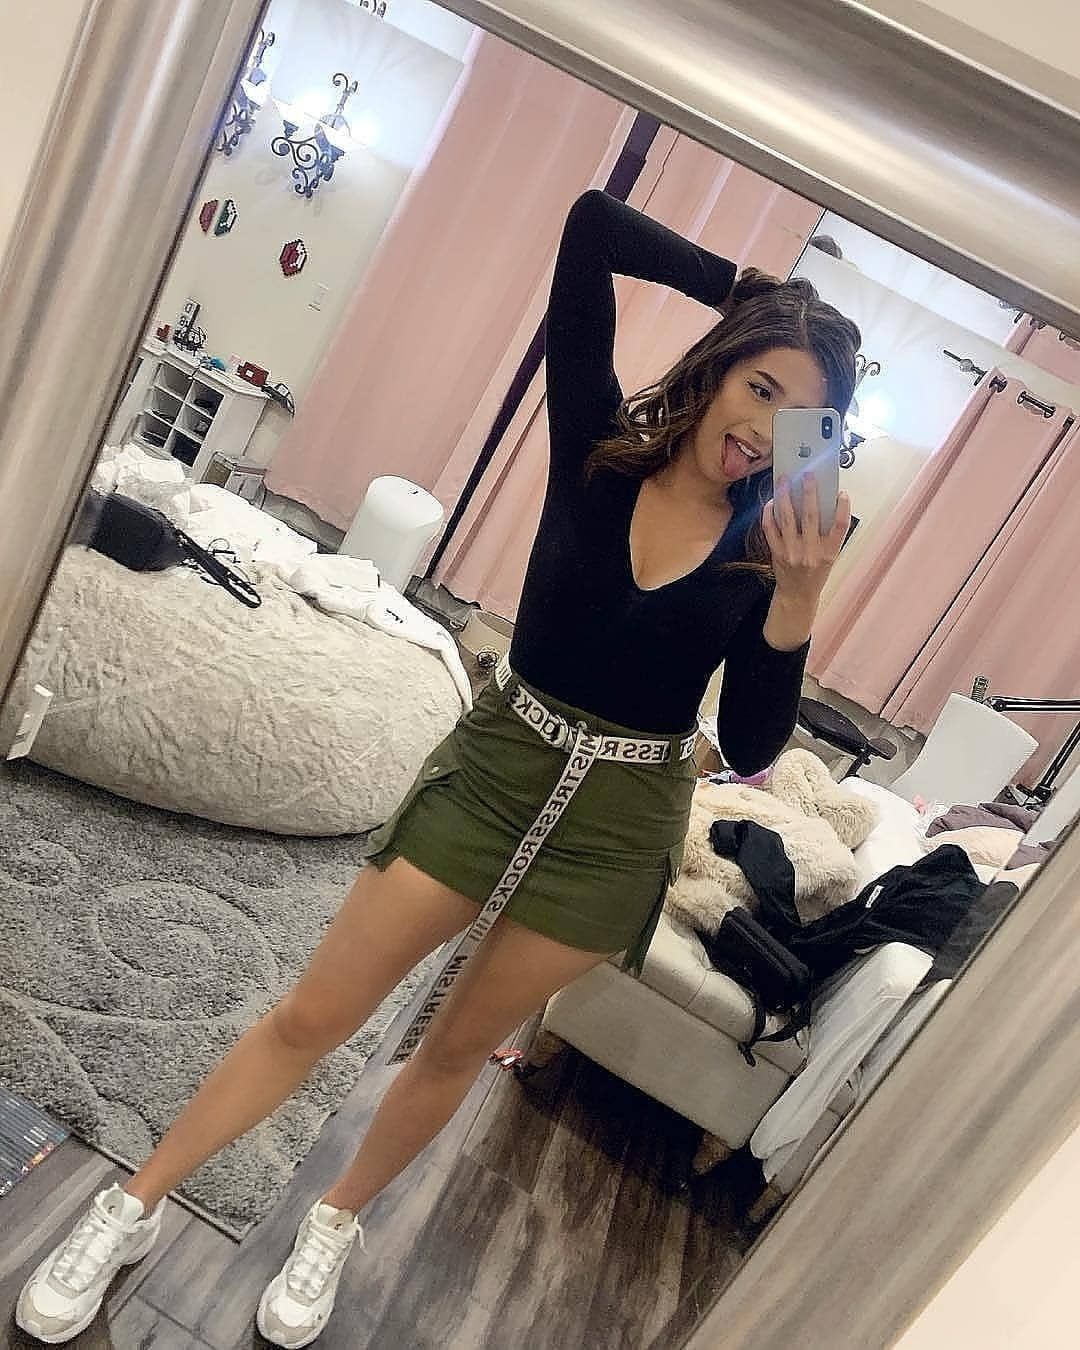 hot pictures of pokimane which will make you want to